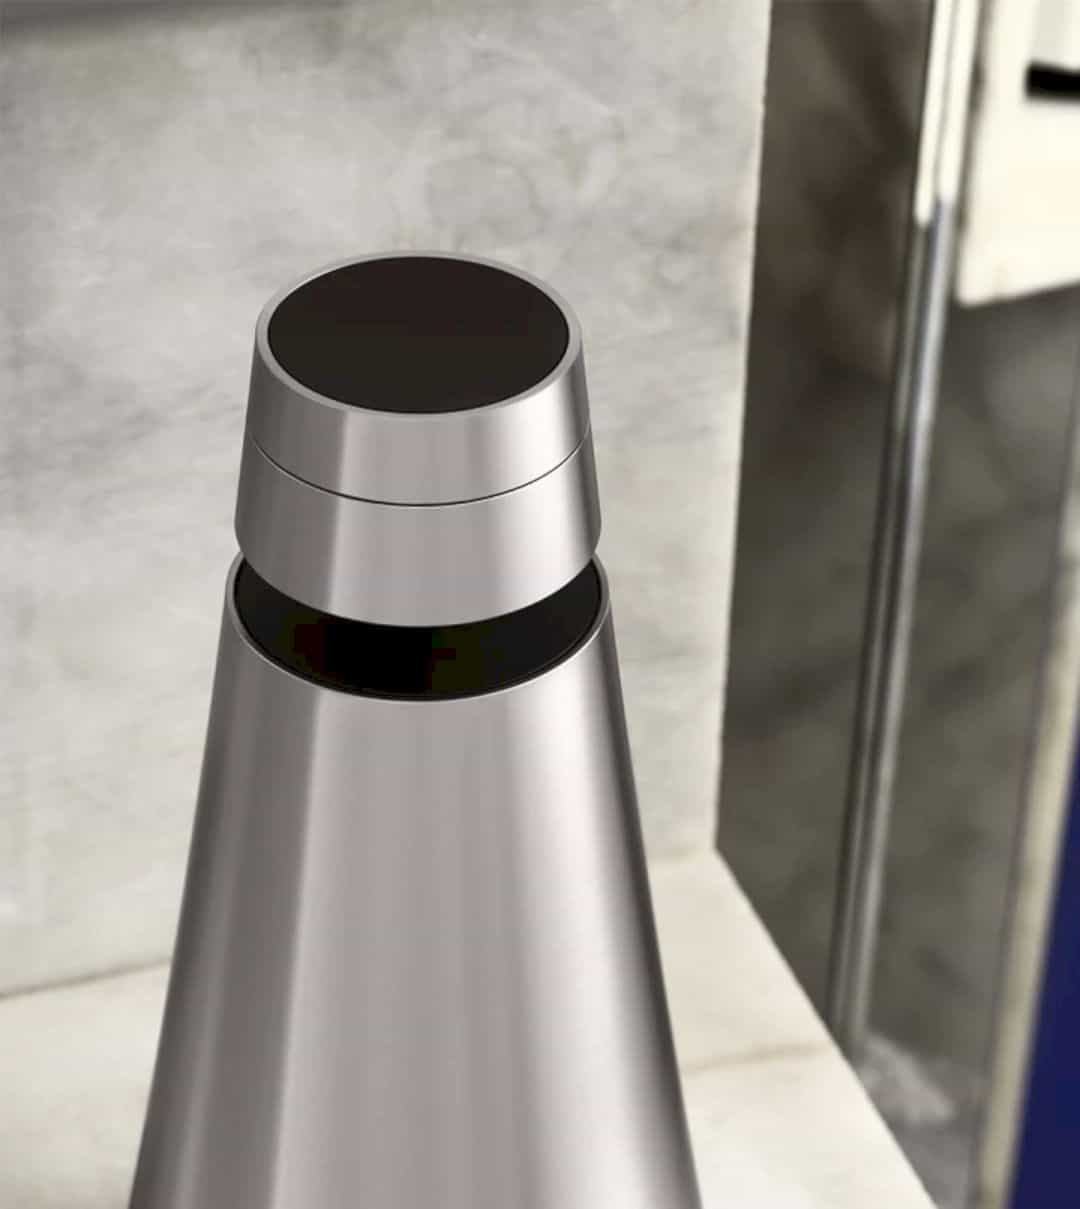 Beosound 1 With The Google Assistant 5